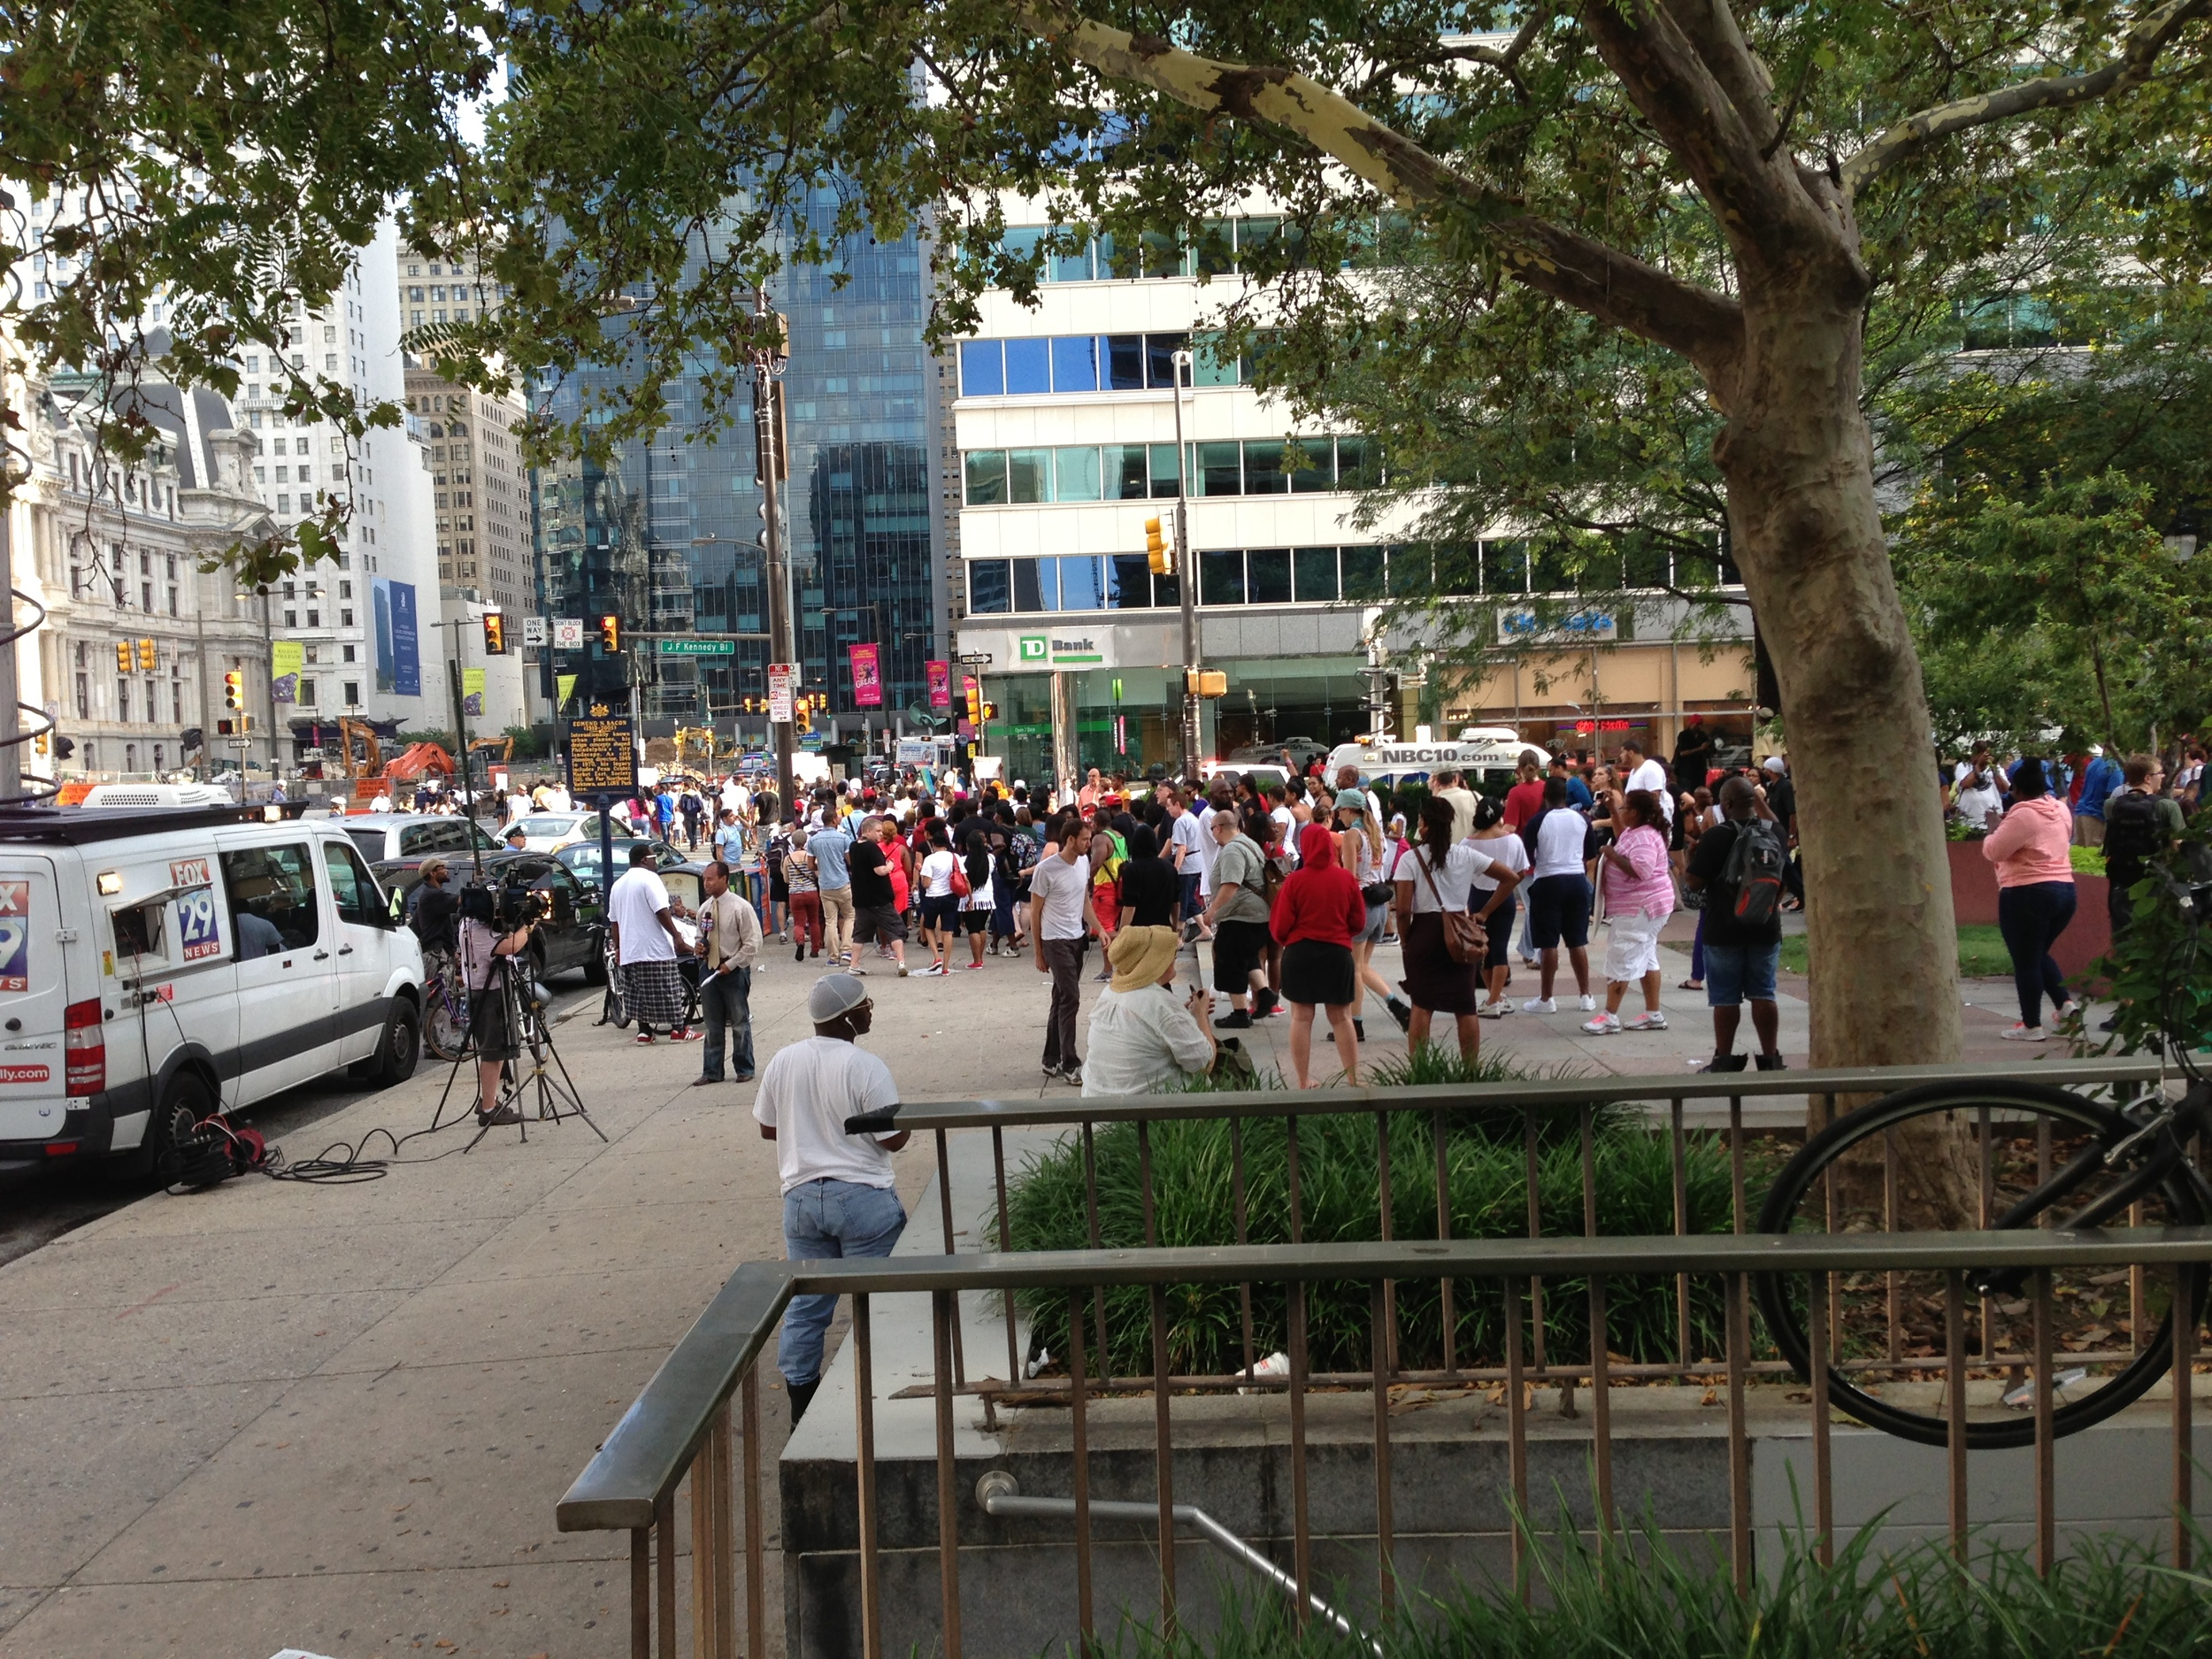 The Trayvon Martin rally in Love Park becomes a march down 15th street; don't know where they were headed.